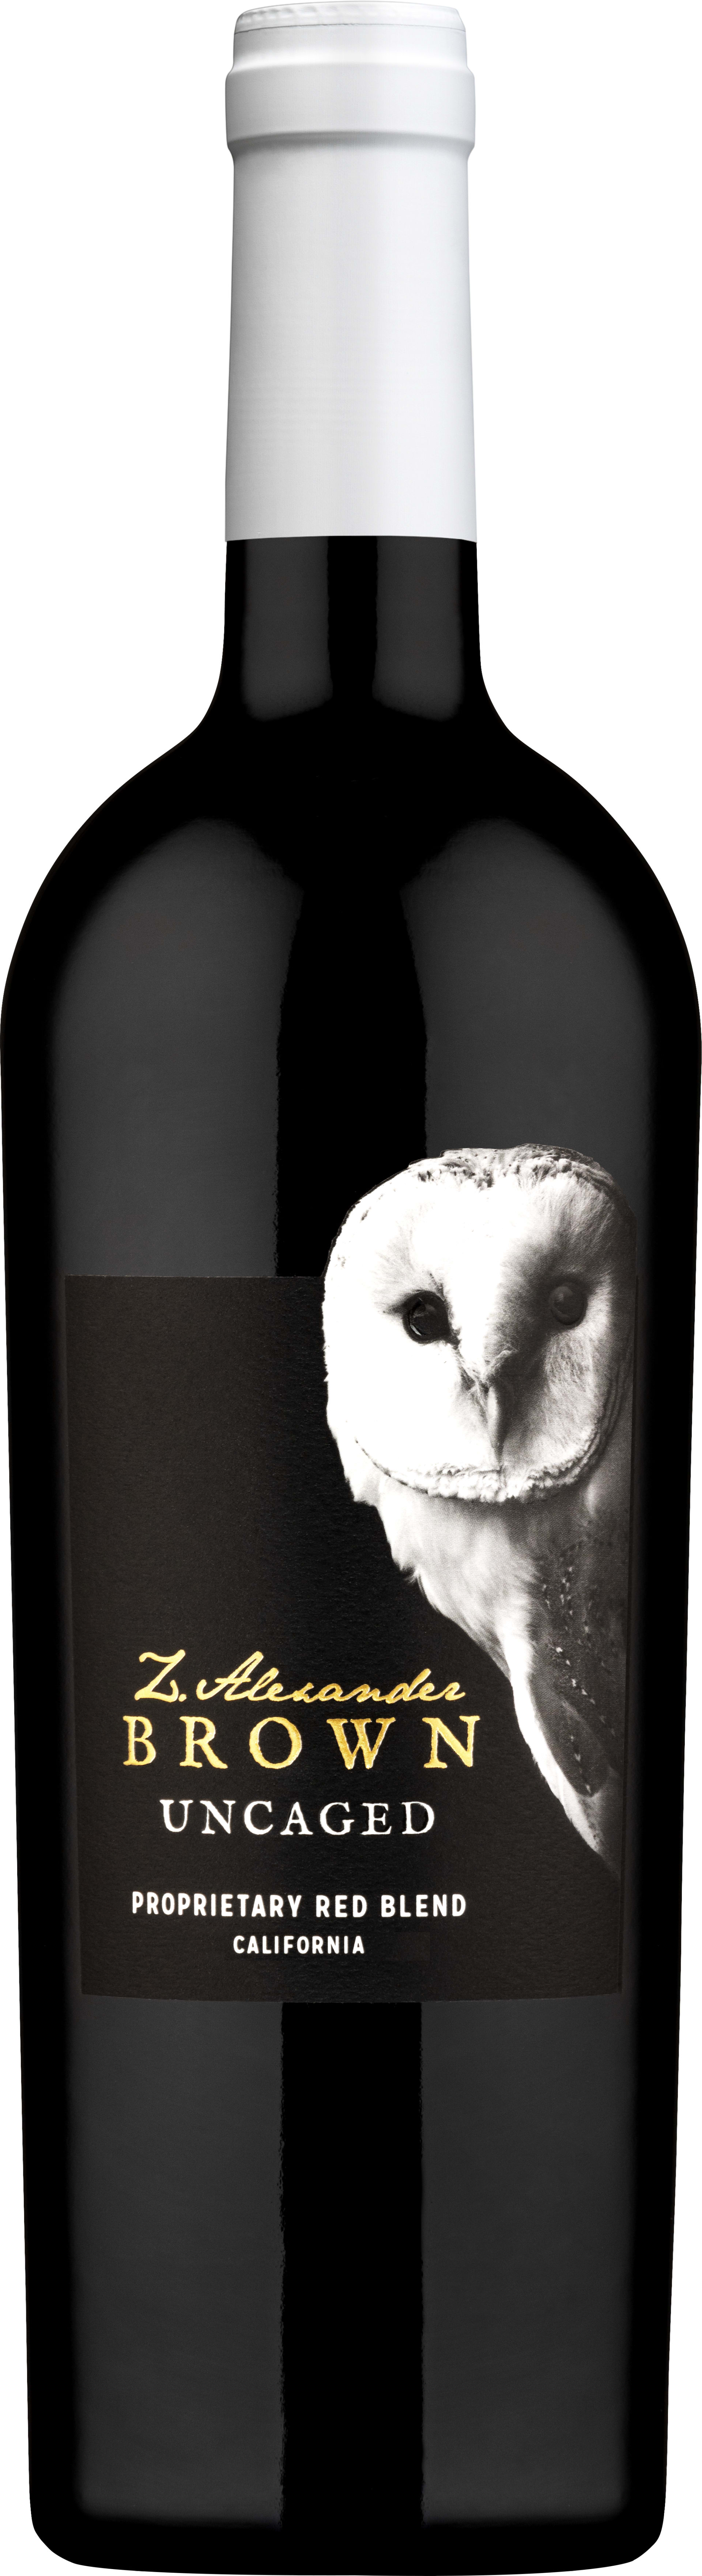 Z. Alexander Brown Uncaged Red Blend 2017